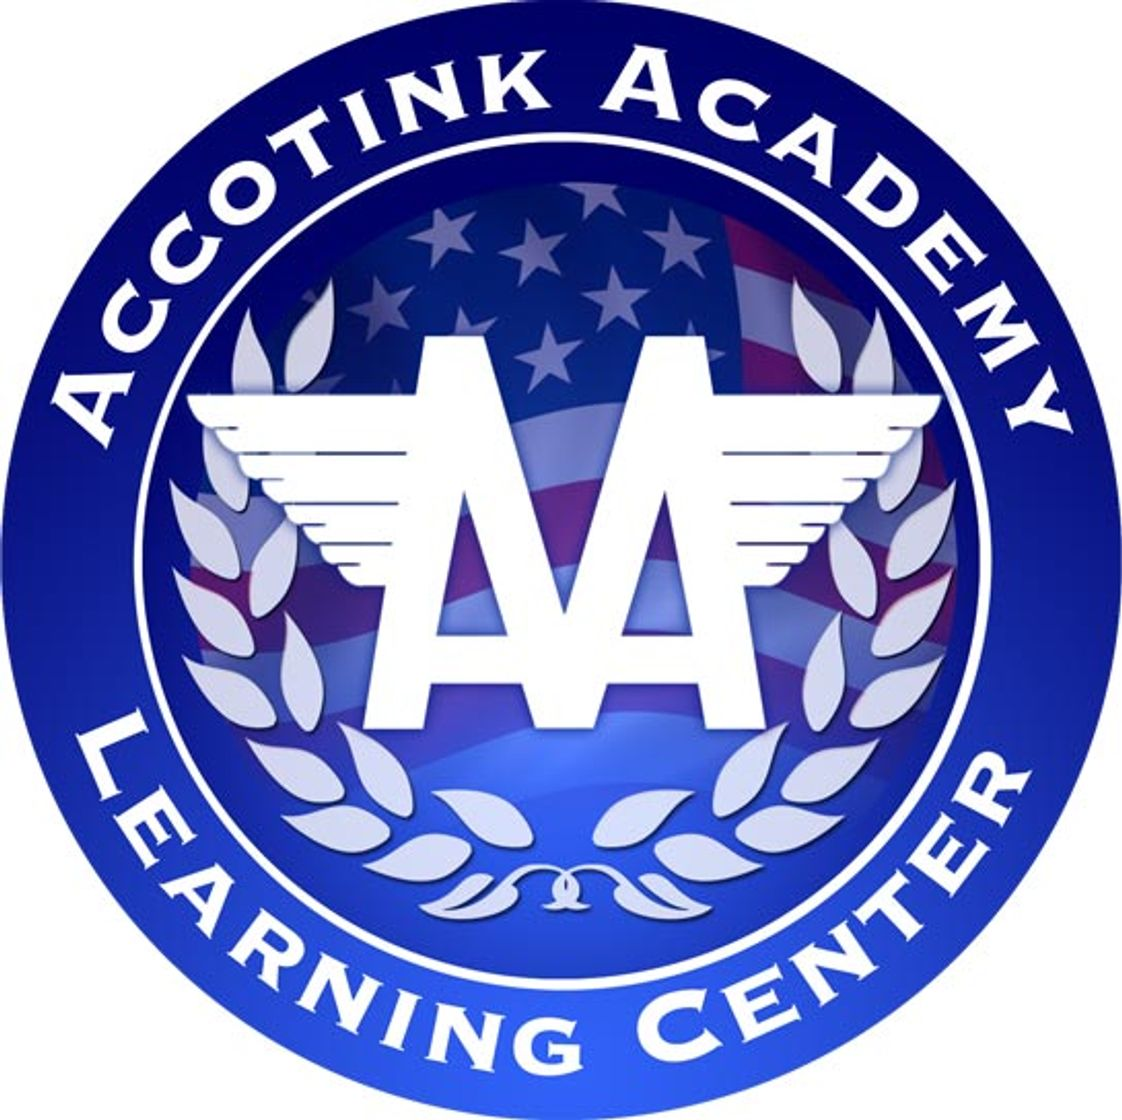 Accotink Alternative Learning Center Photo #1